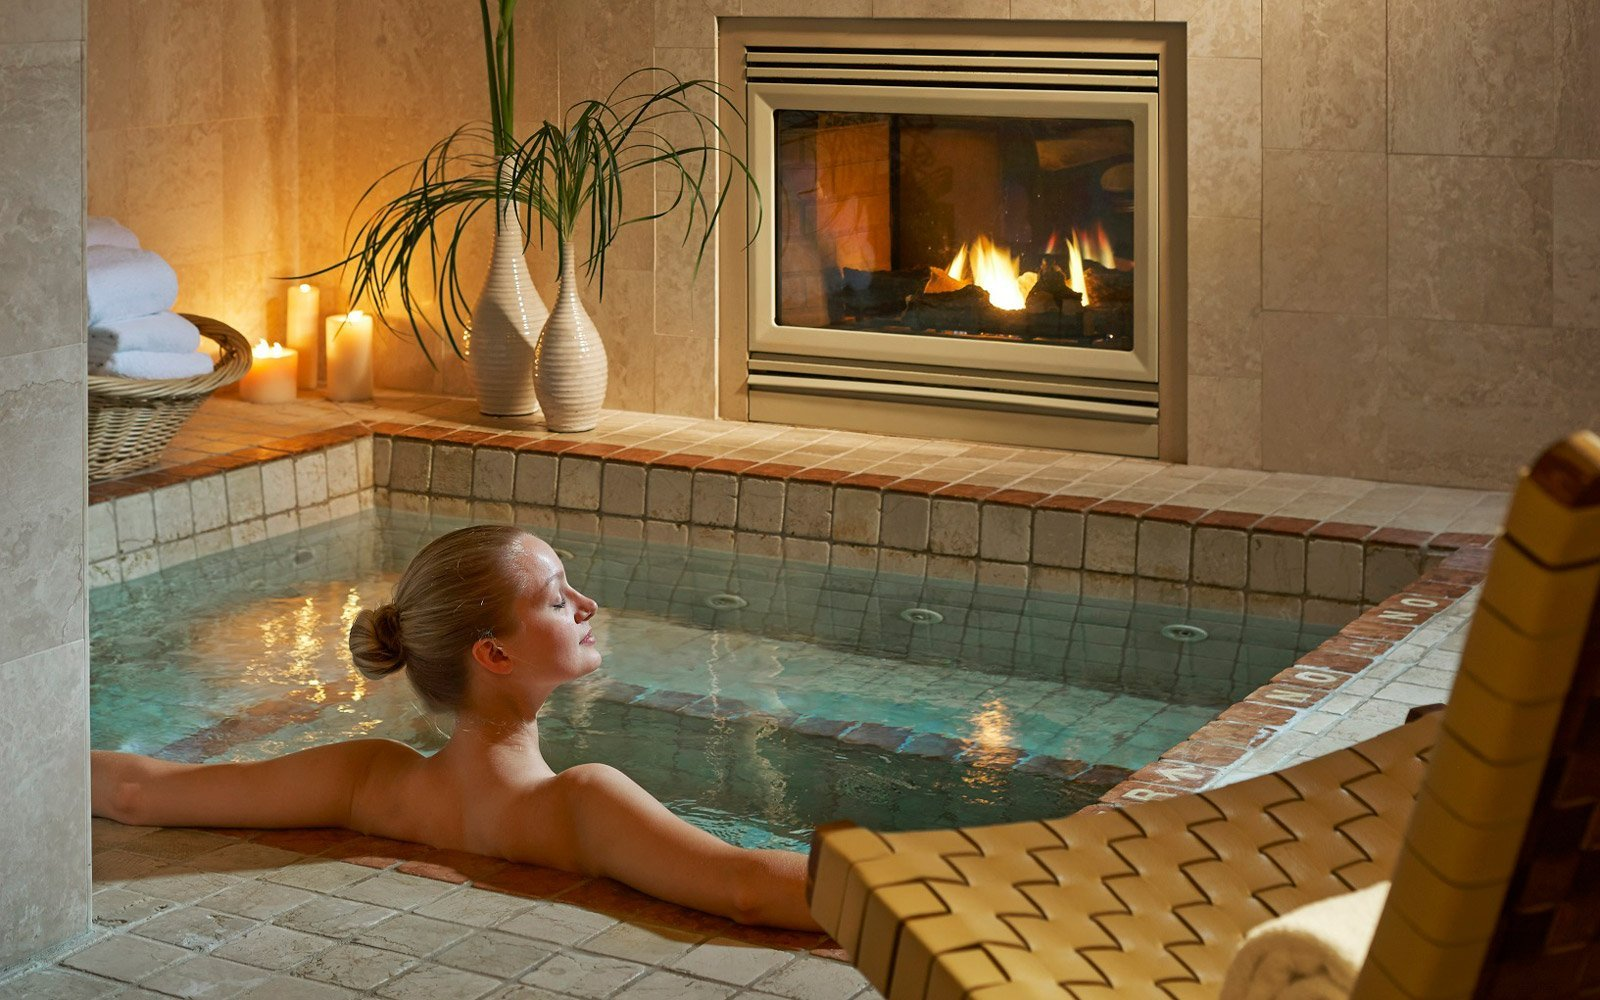 Woman relaxing in the indoor spa hot tub